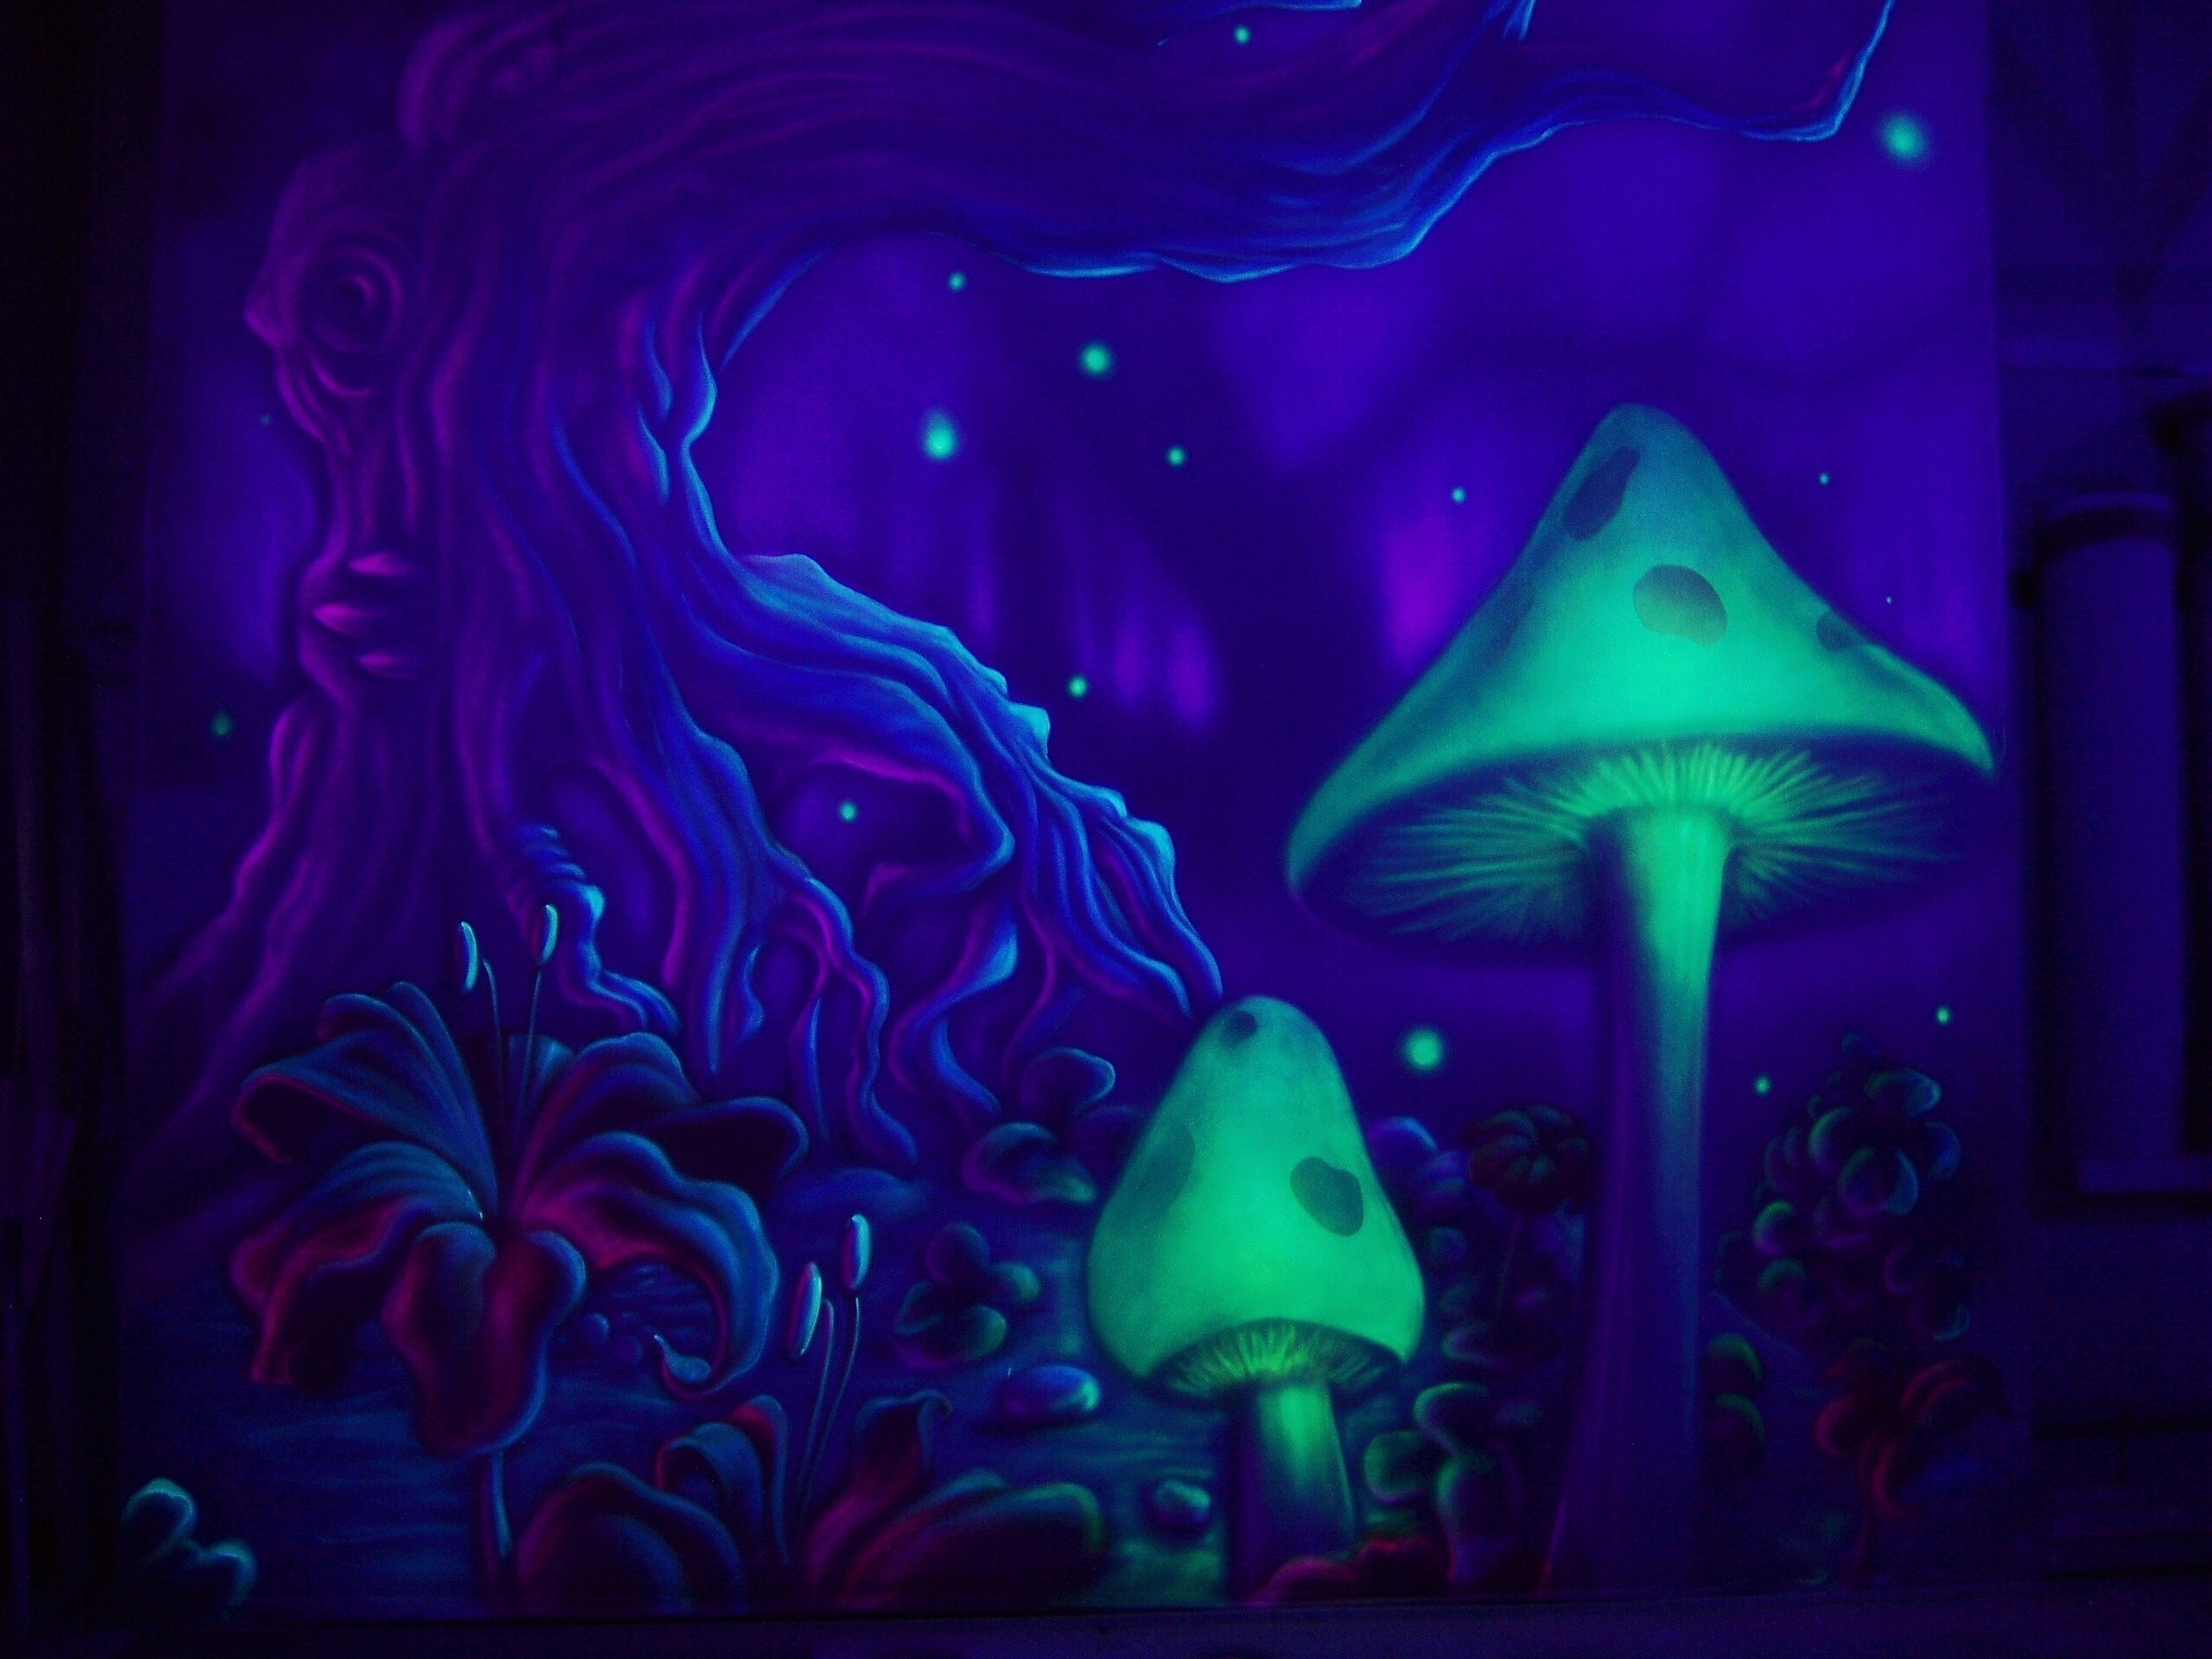 Wonderful Wallpaper Music Trippy - 810152-full-size-dope-tumblr-backgrounds-2560x1920-for-htc  Pic_452125.jpg